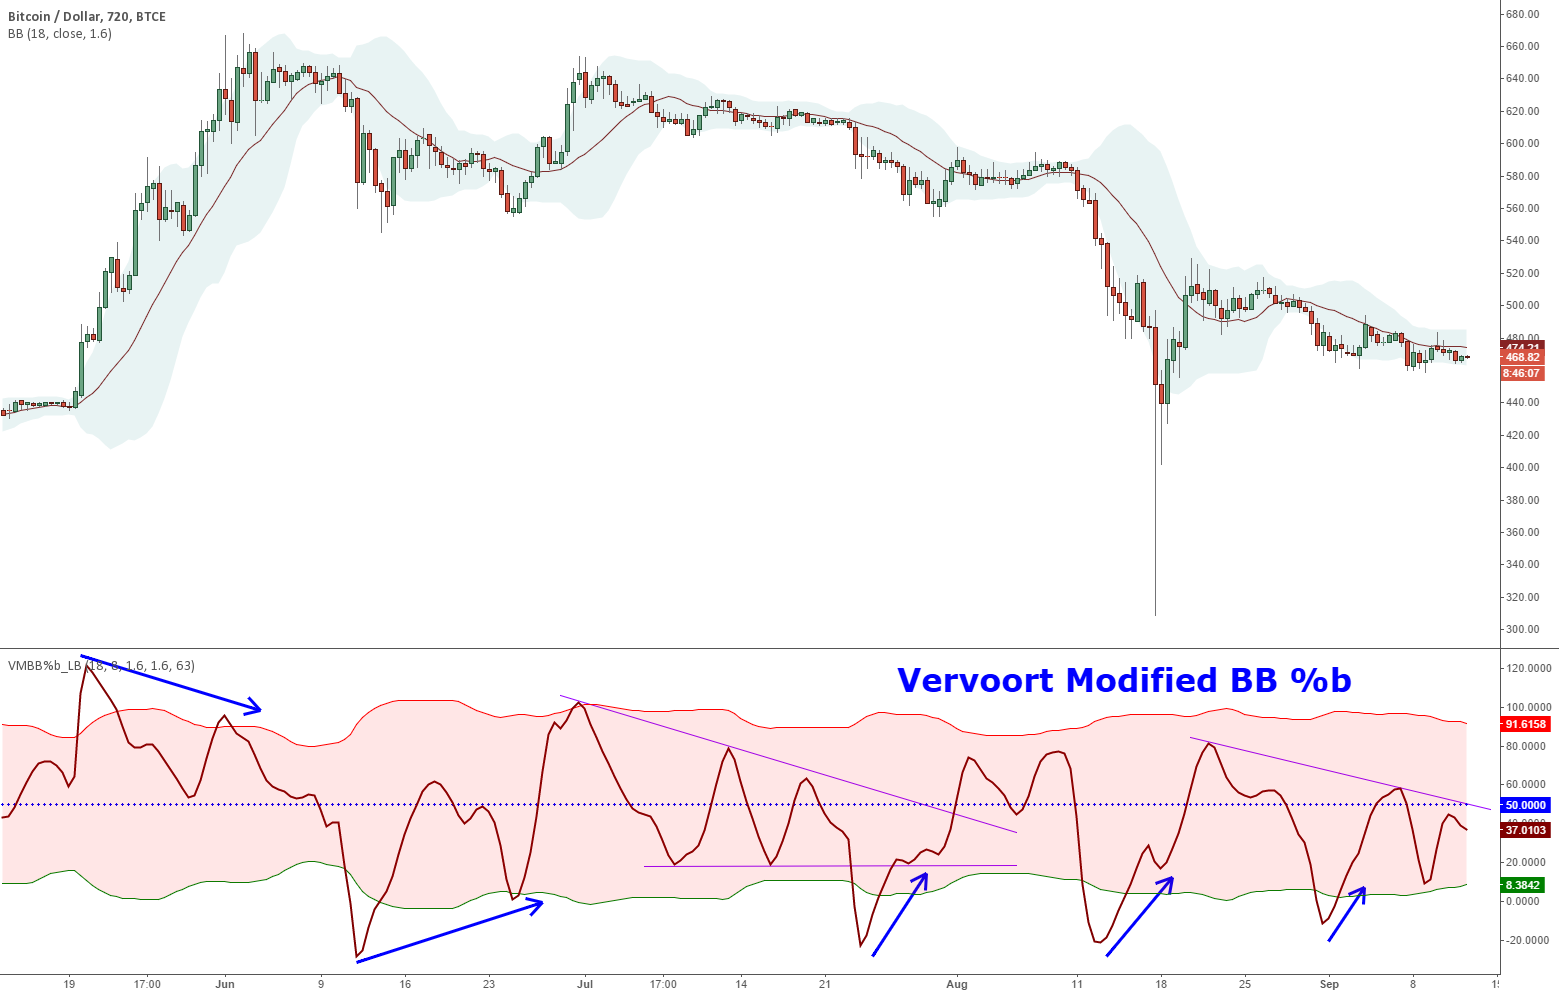 Vervoort Smoothed %b [LazyBear]